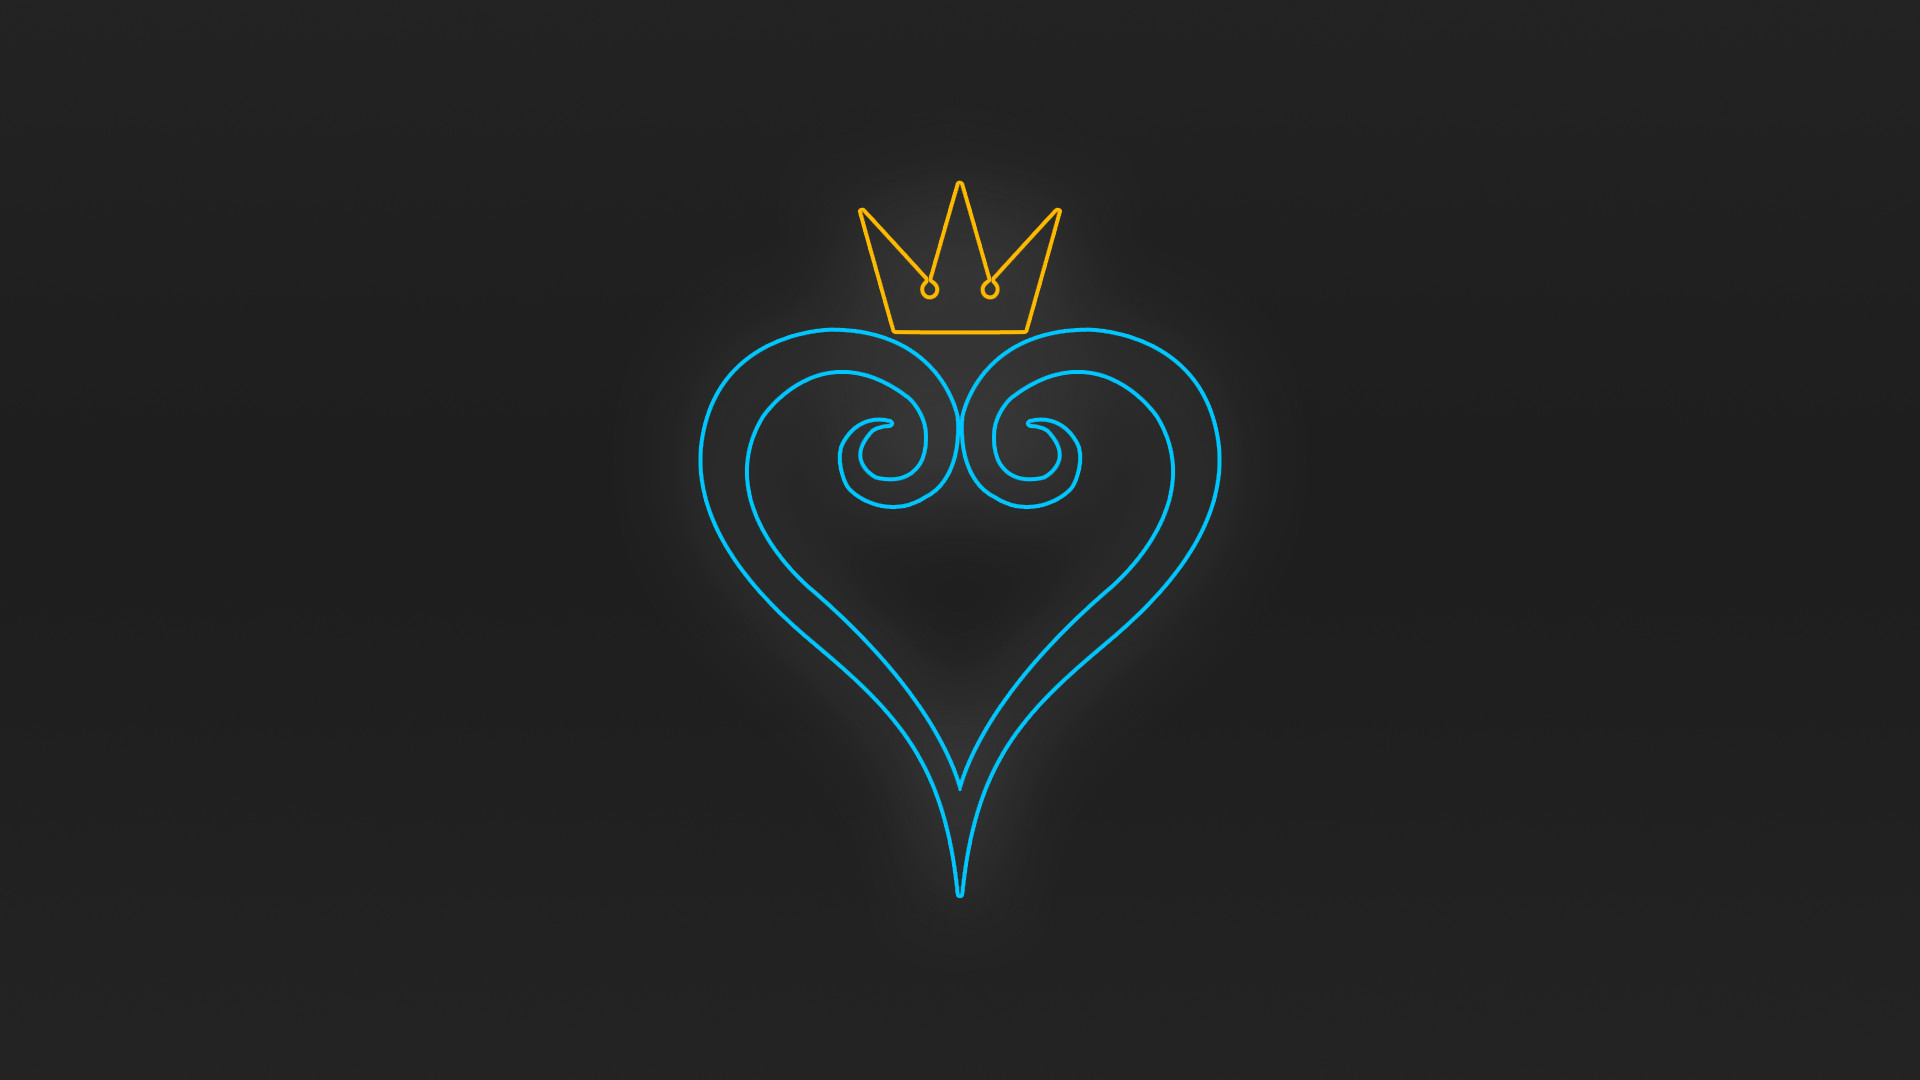 1920x1080 Kingdom Hearts Heart/Crown Wallpaper